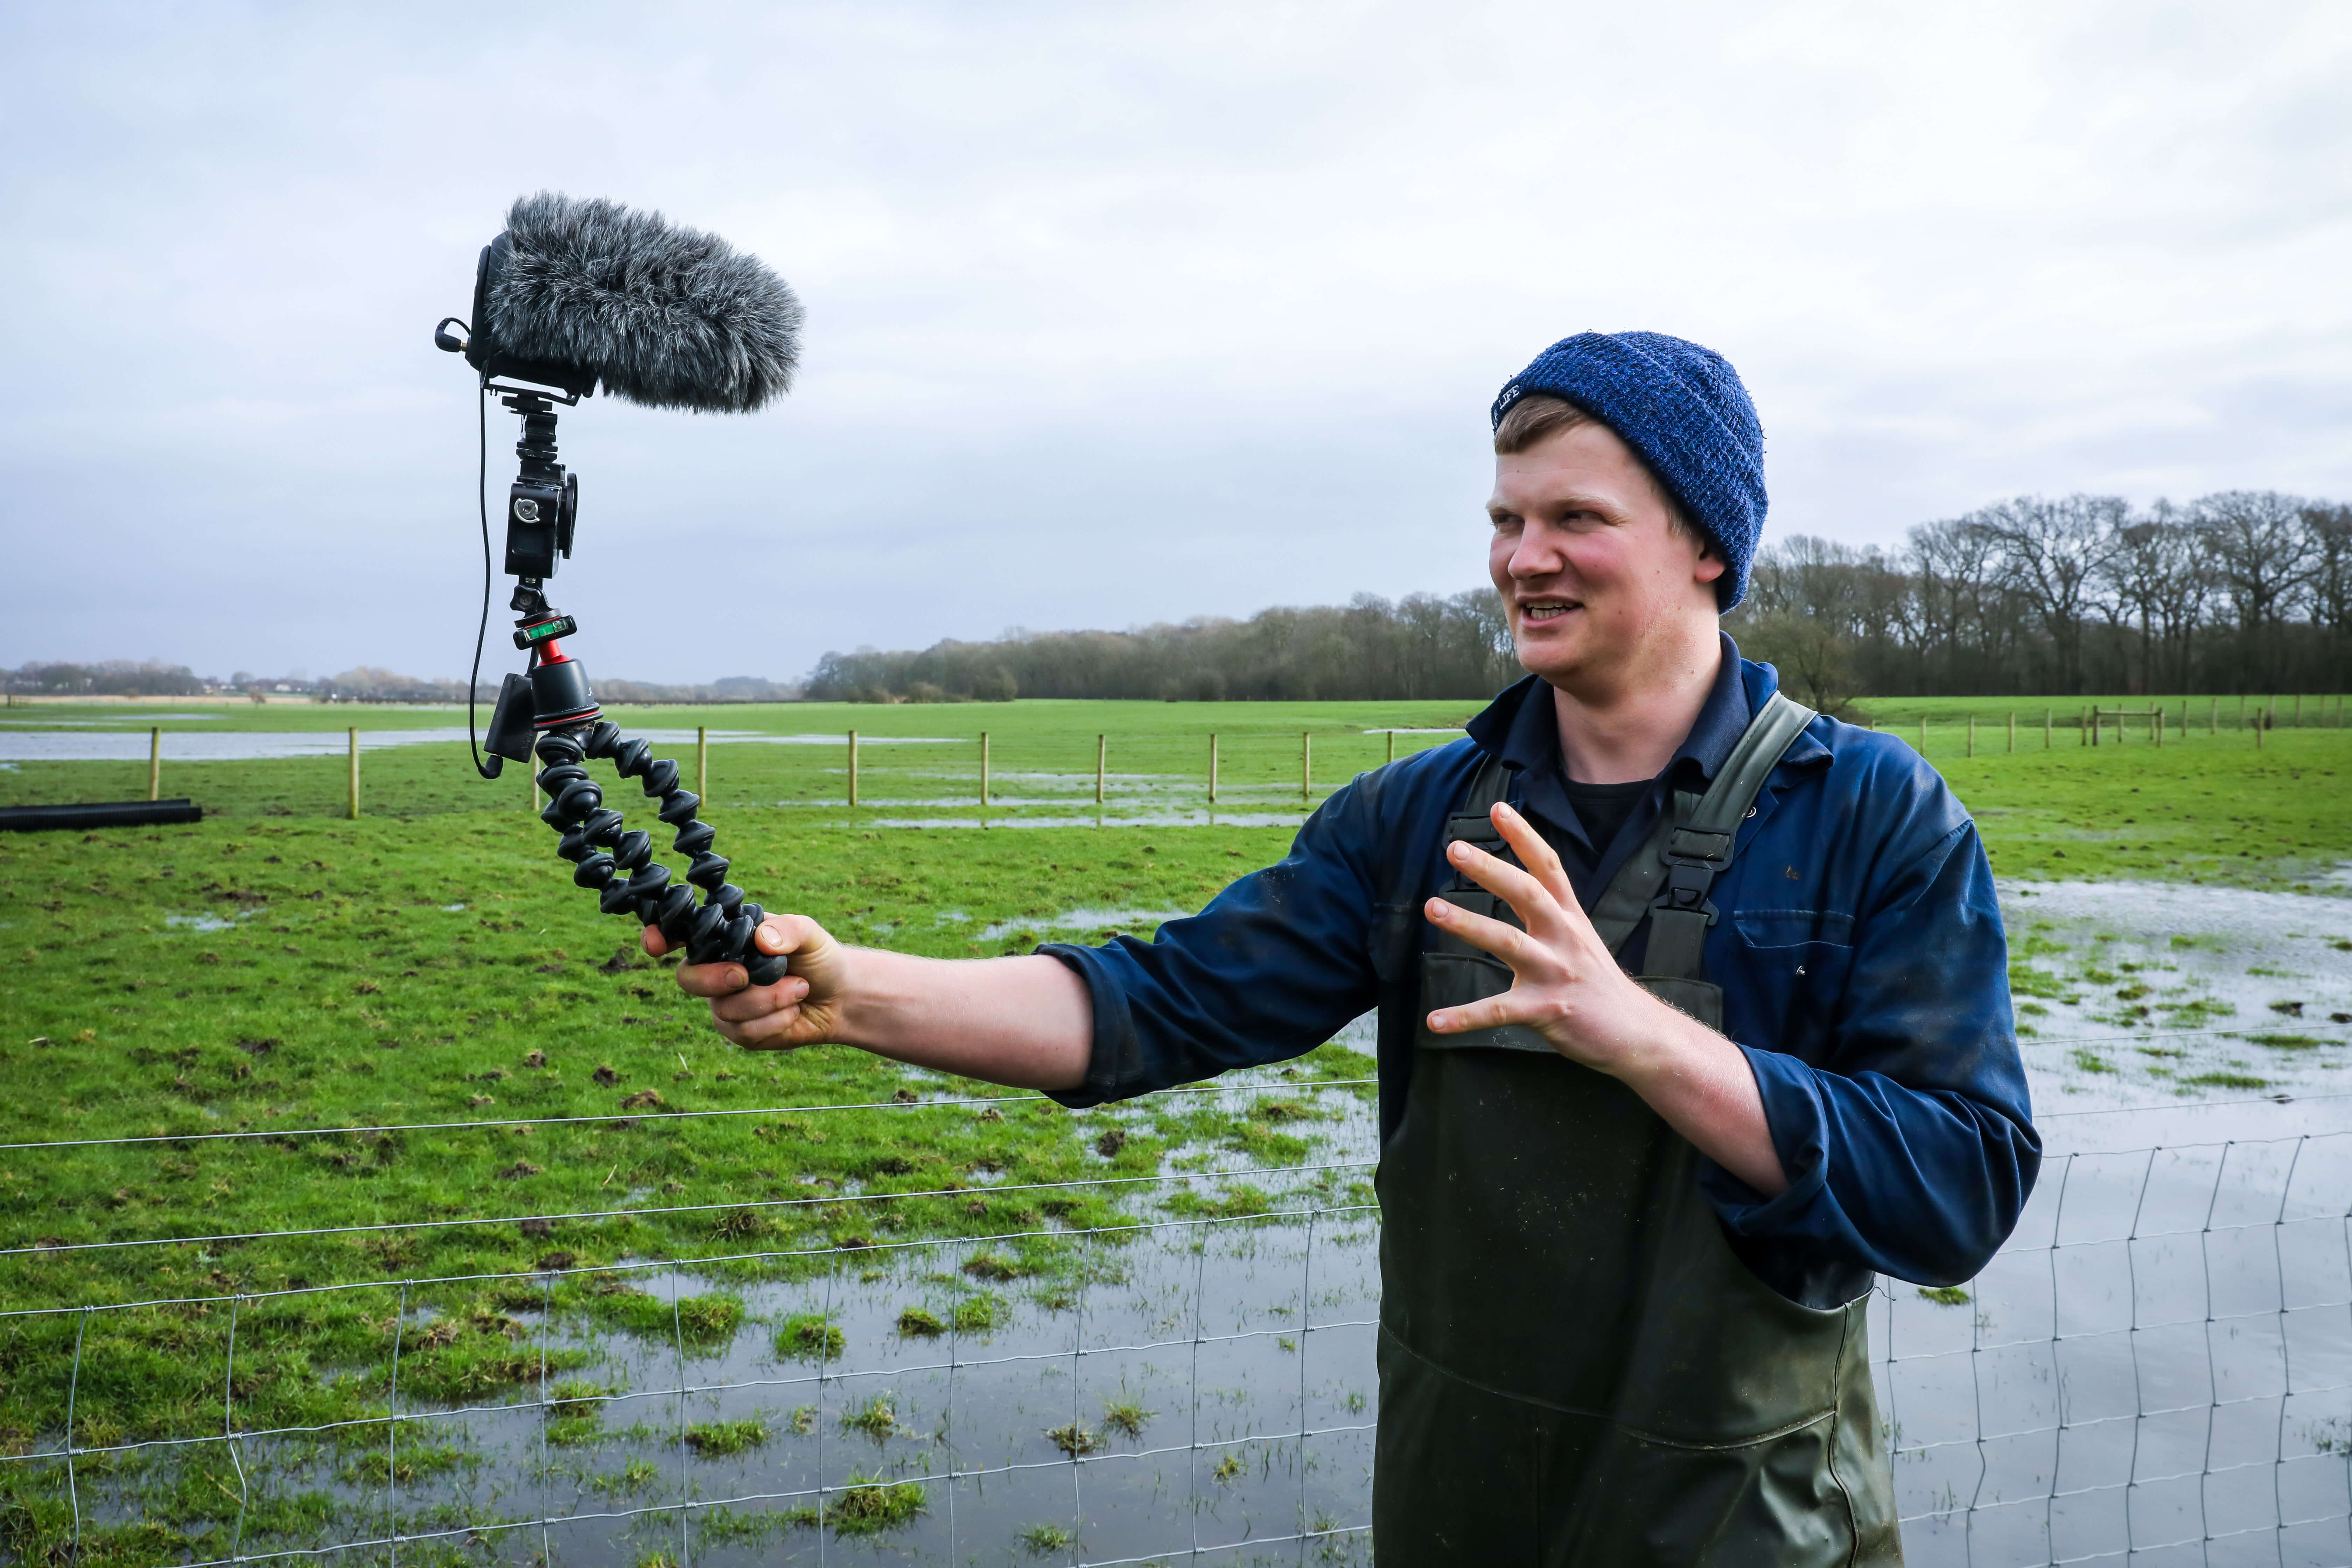 Tom Pemberton on his farm in Lytham St Annes, Lancashire vlogging to camera in a wet field